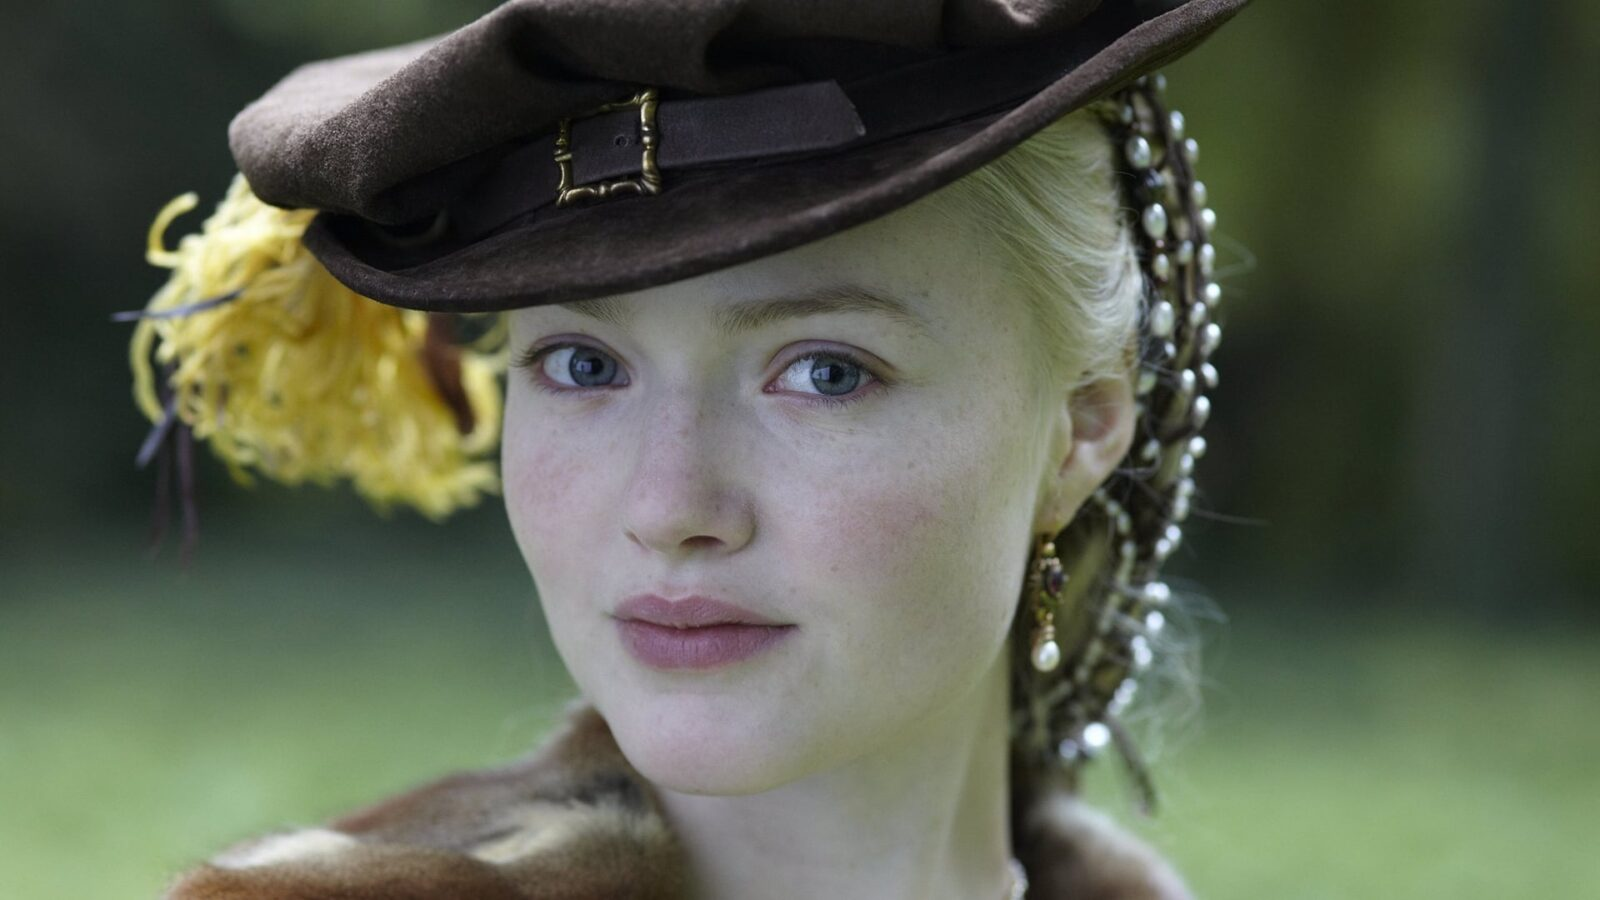 Holliday Grainger HD pic for PC